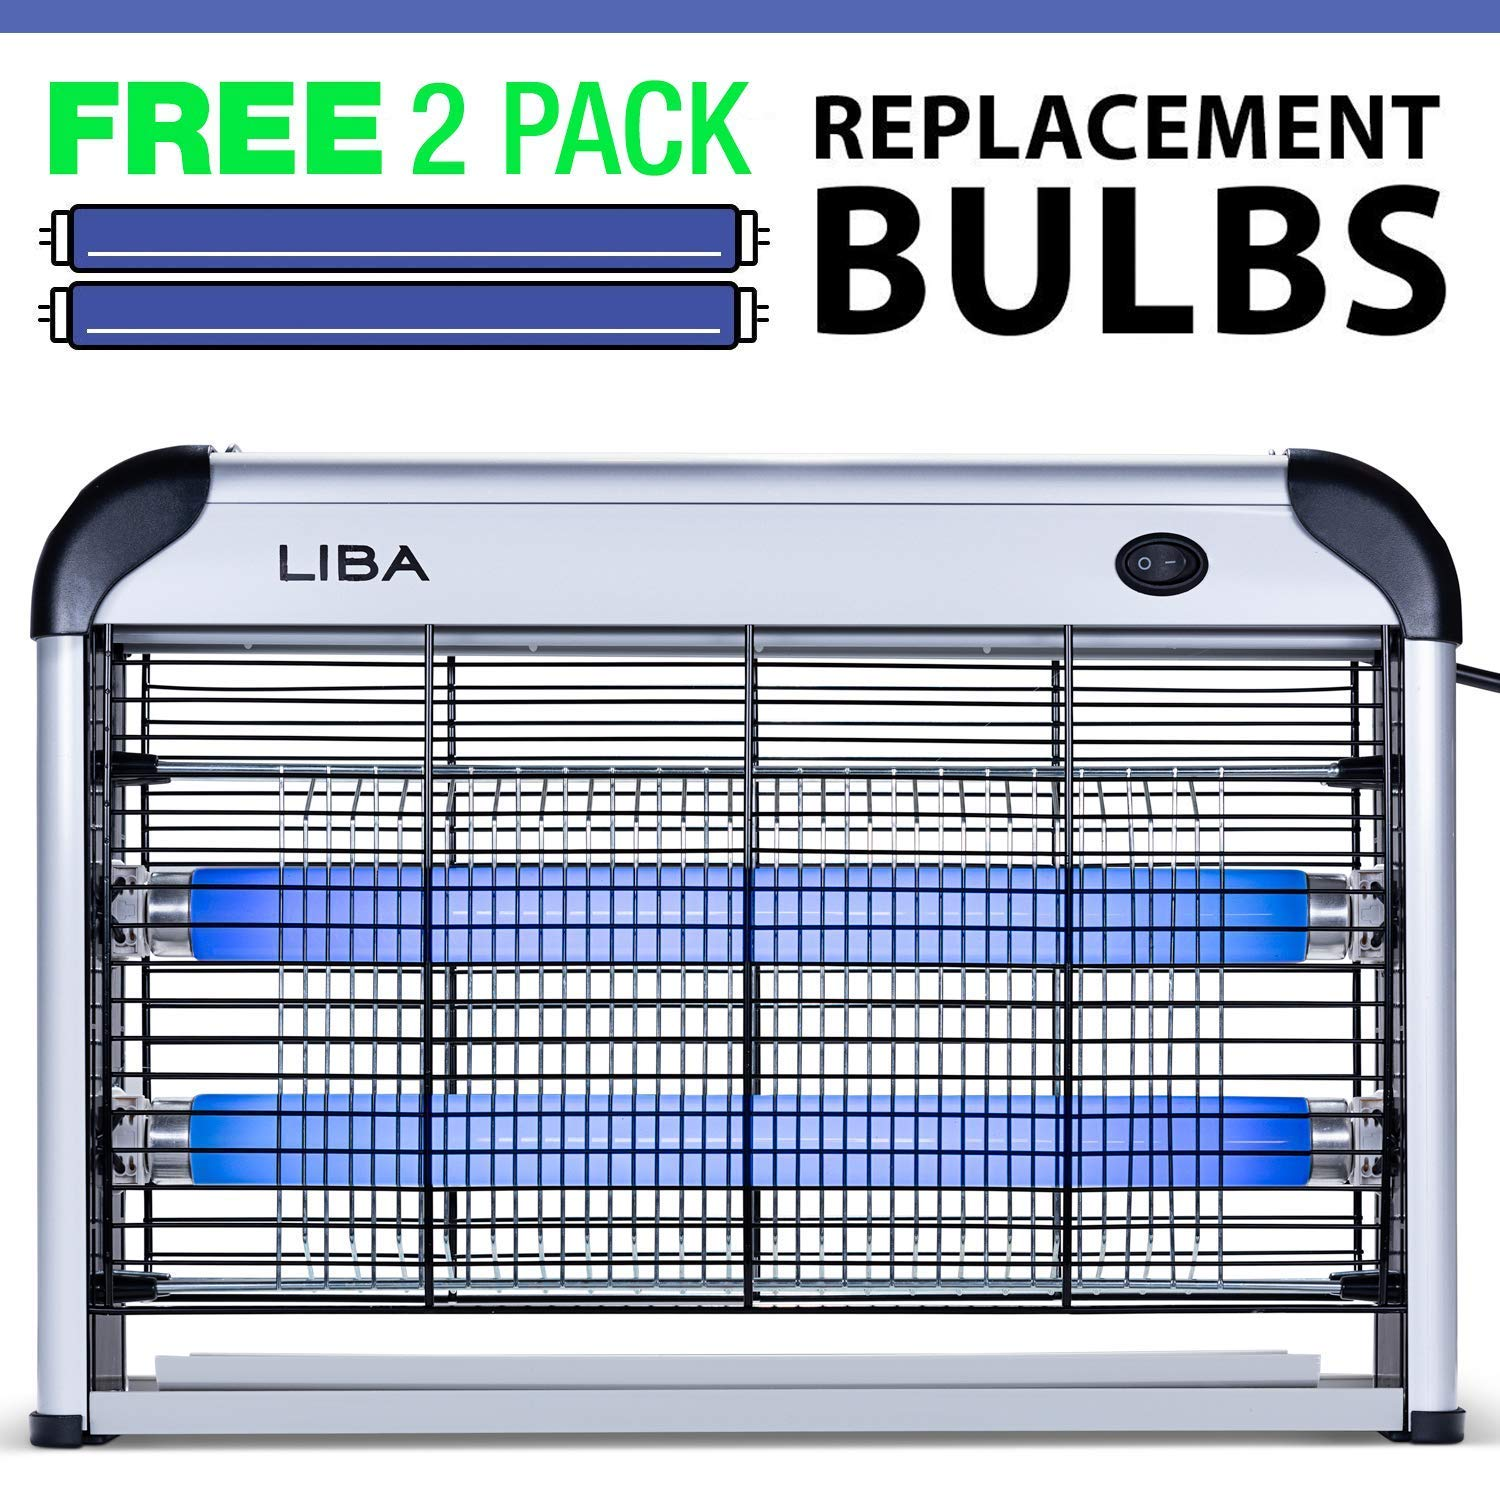 LiBa Bug Zapper Electric Indoor Insect Killer Mosquito, Bug, Fly Killer - Powerful 2800V Grid 20W Bulbs - 2-Pack Replacement Bulbs Included by LiBa